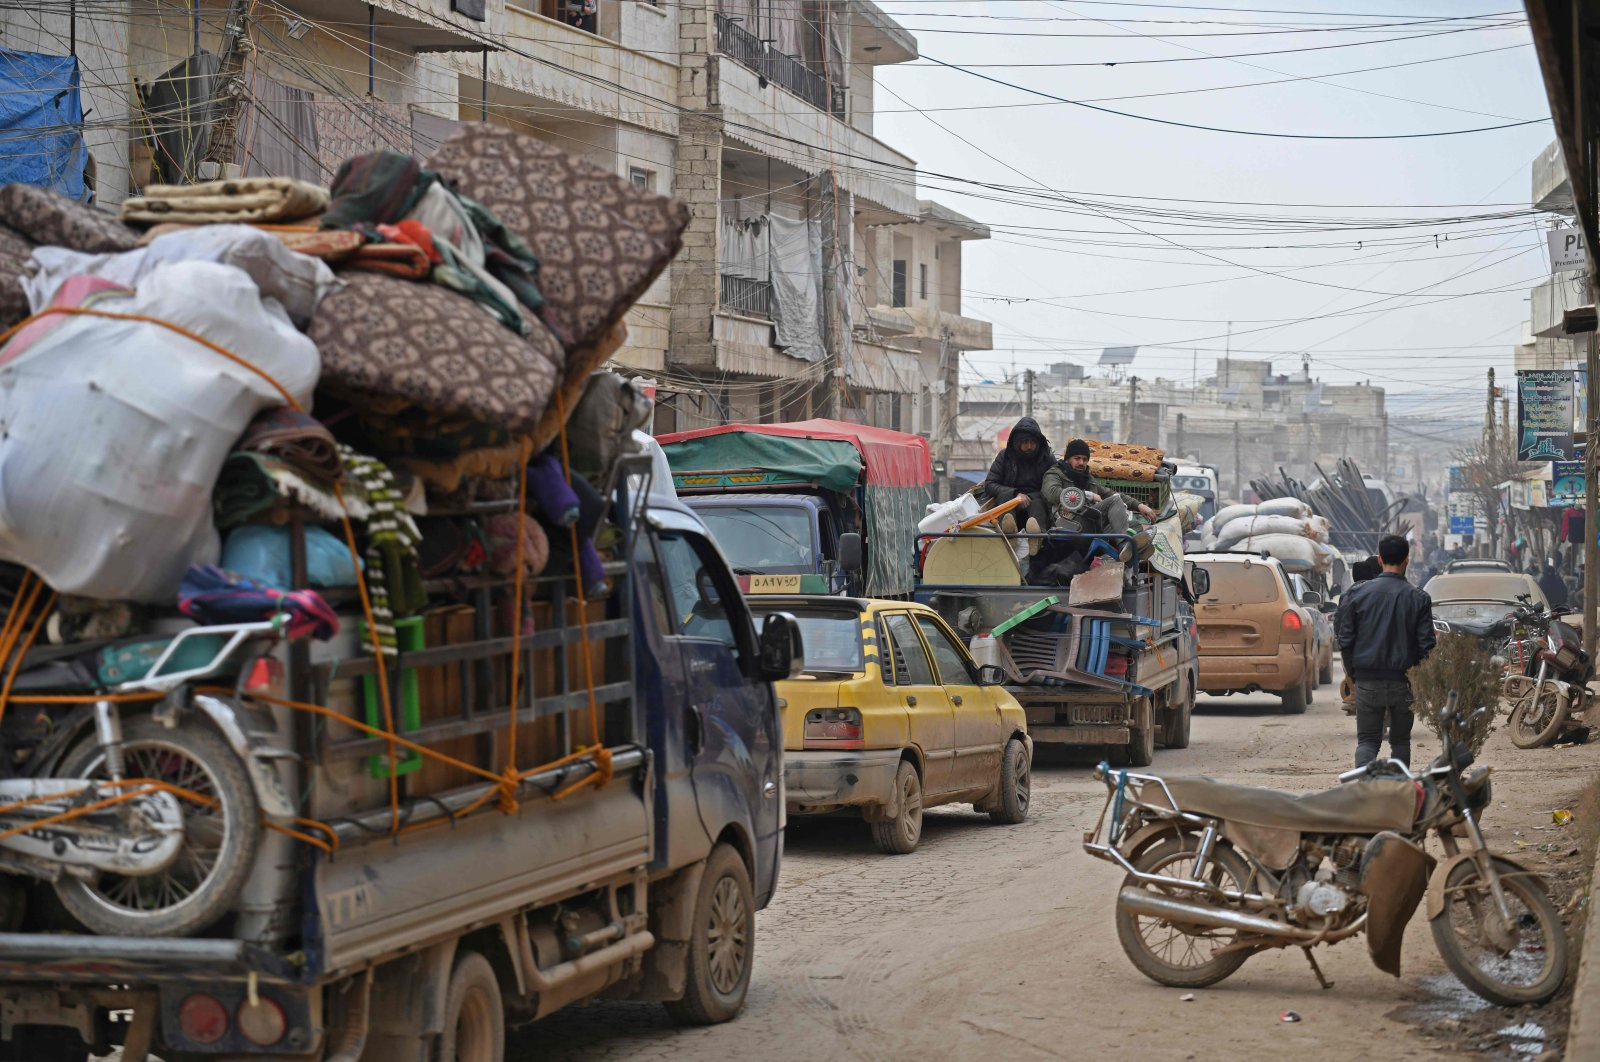 Vehicles carrying internally-displaced persons (IDPs) and their belongings drive through the Syrian town of Atme near the Turkish border towards the city of Afrin, as people flee advancing Syrian regime forces in Idlib and Aleppo provinces, Feb. 17, 2020. (AFP)